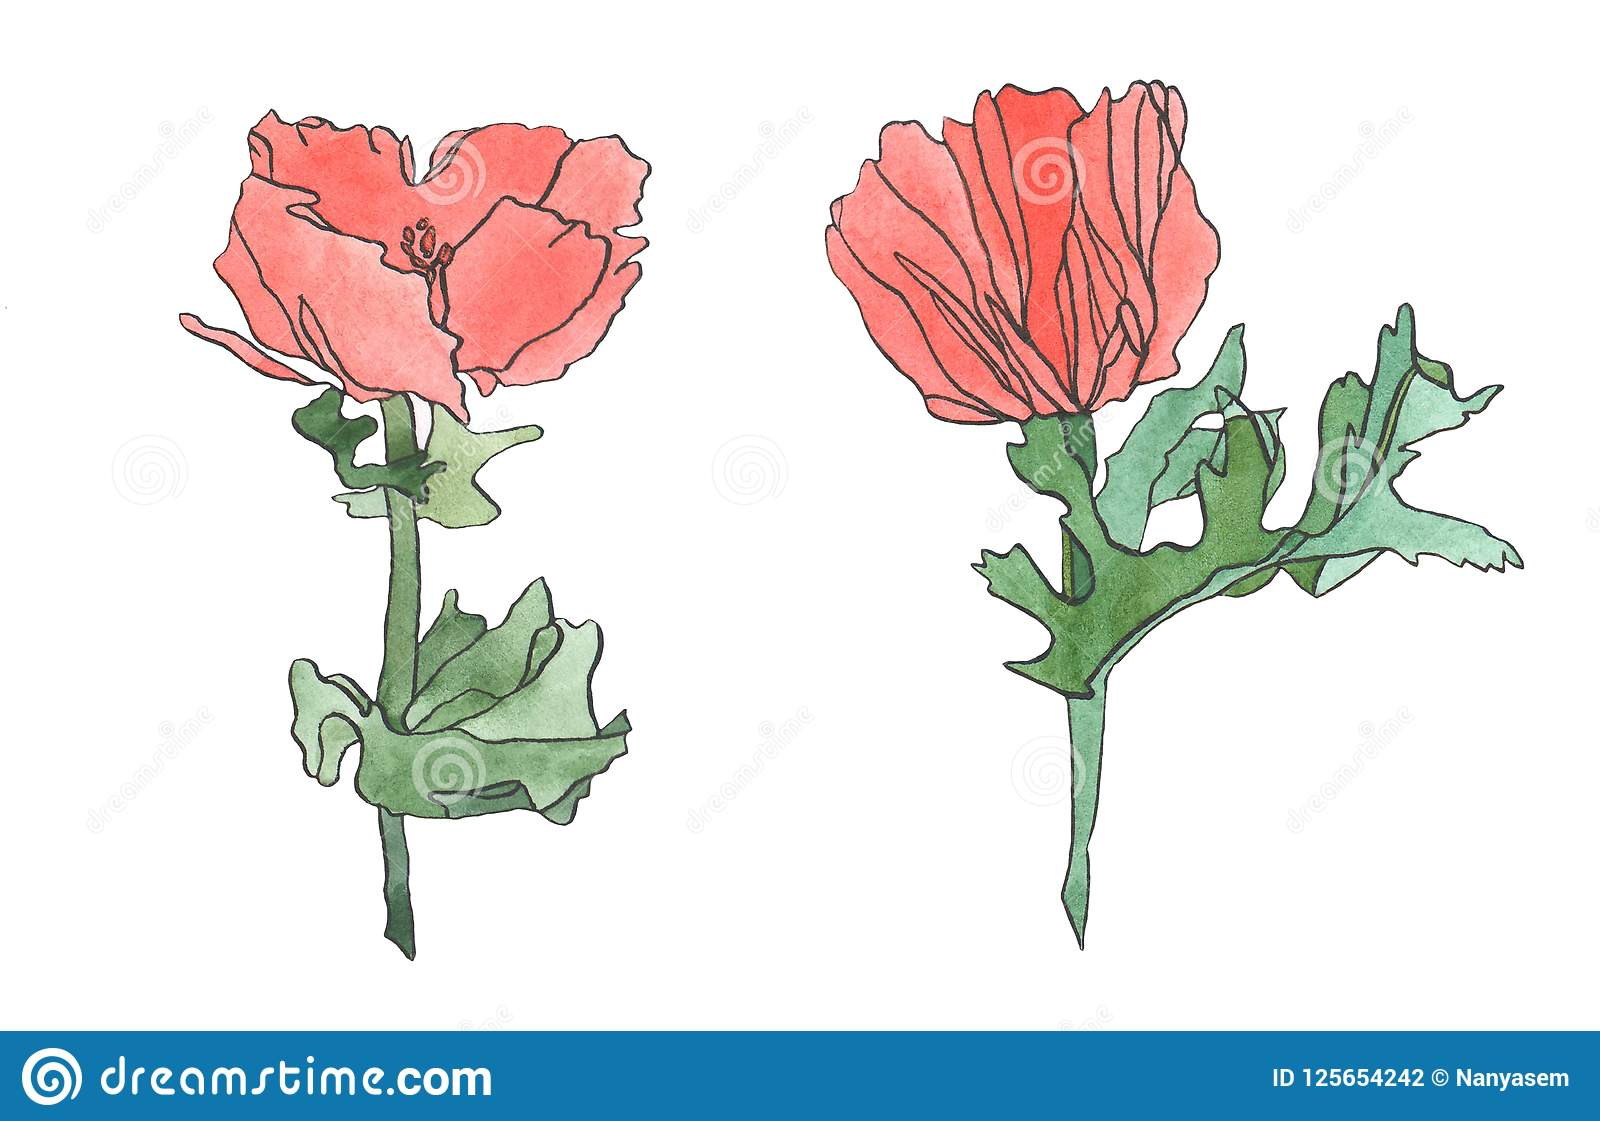 Watercolor pink red poppy flower with leaves stock illustration download watercolor pink red poppy flower with leaves stock illustration illustration of design colorful mightylinksfo